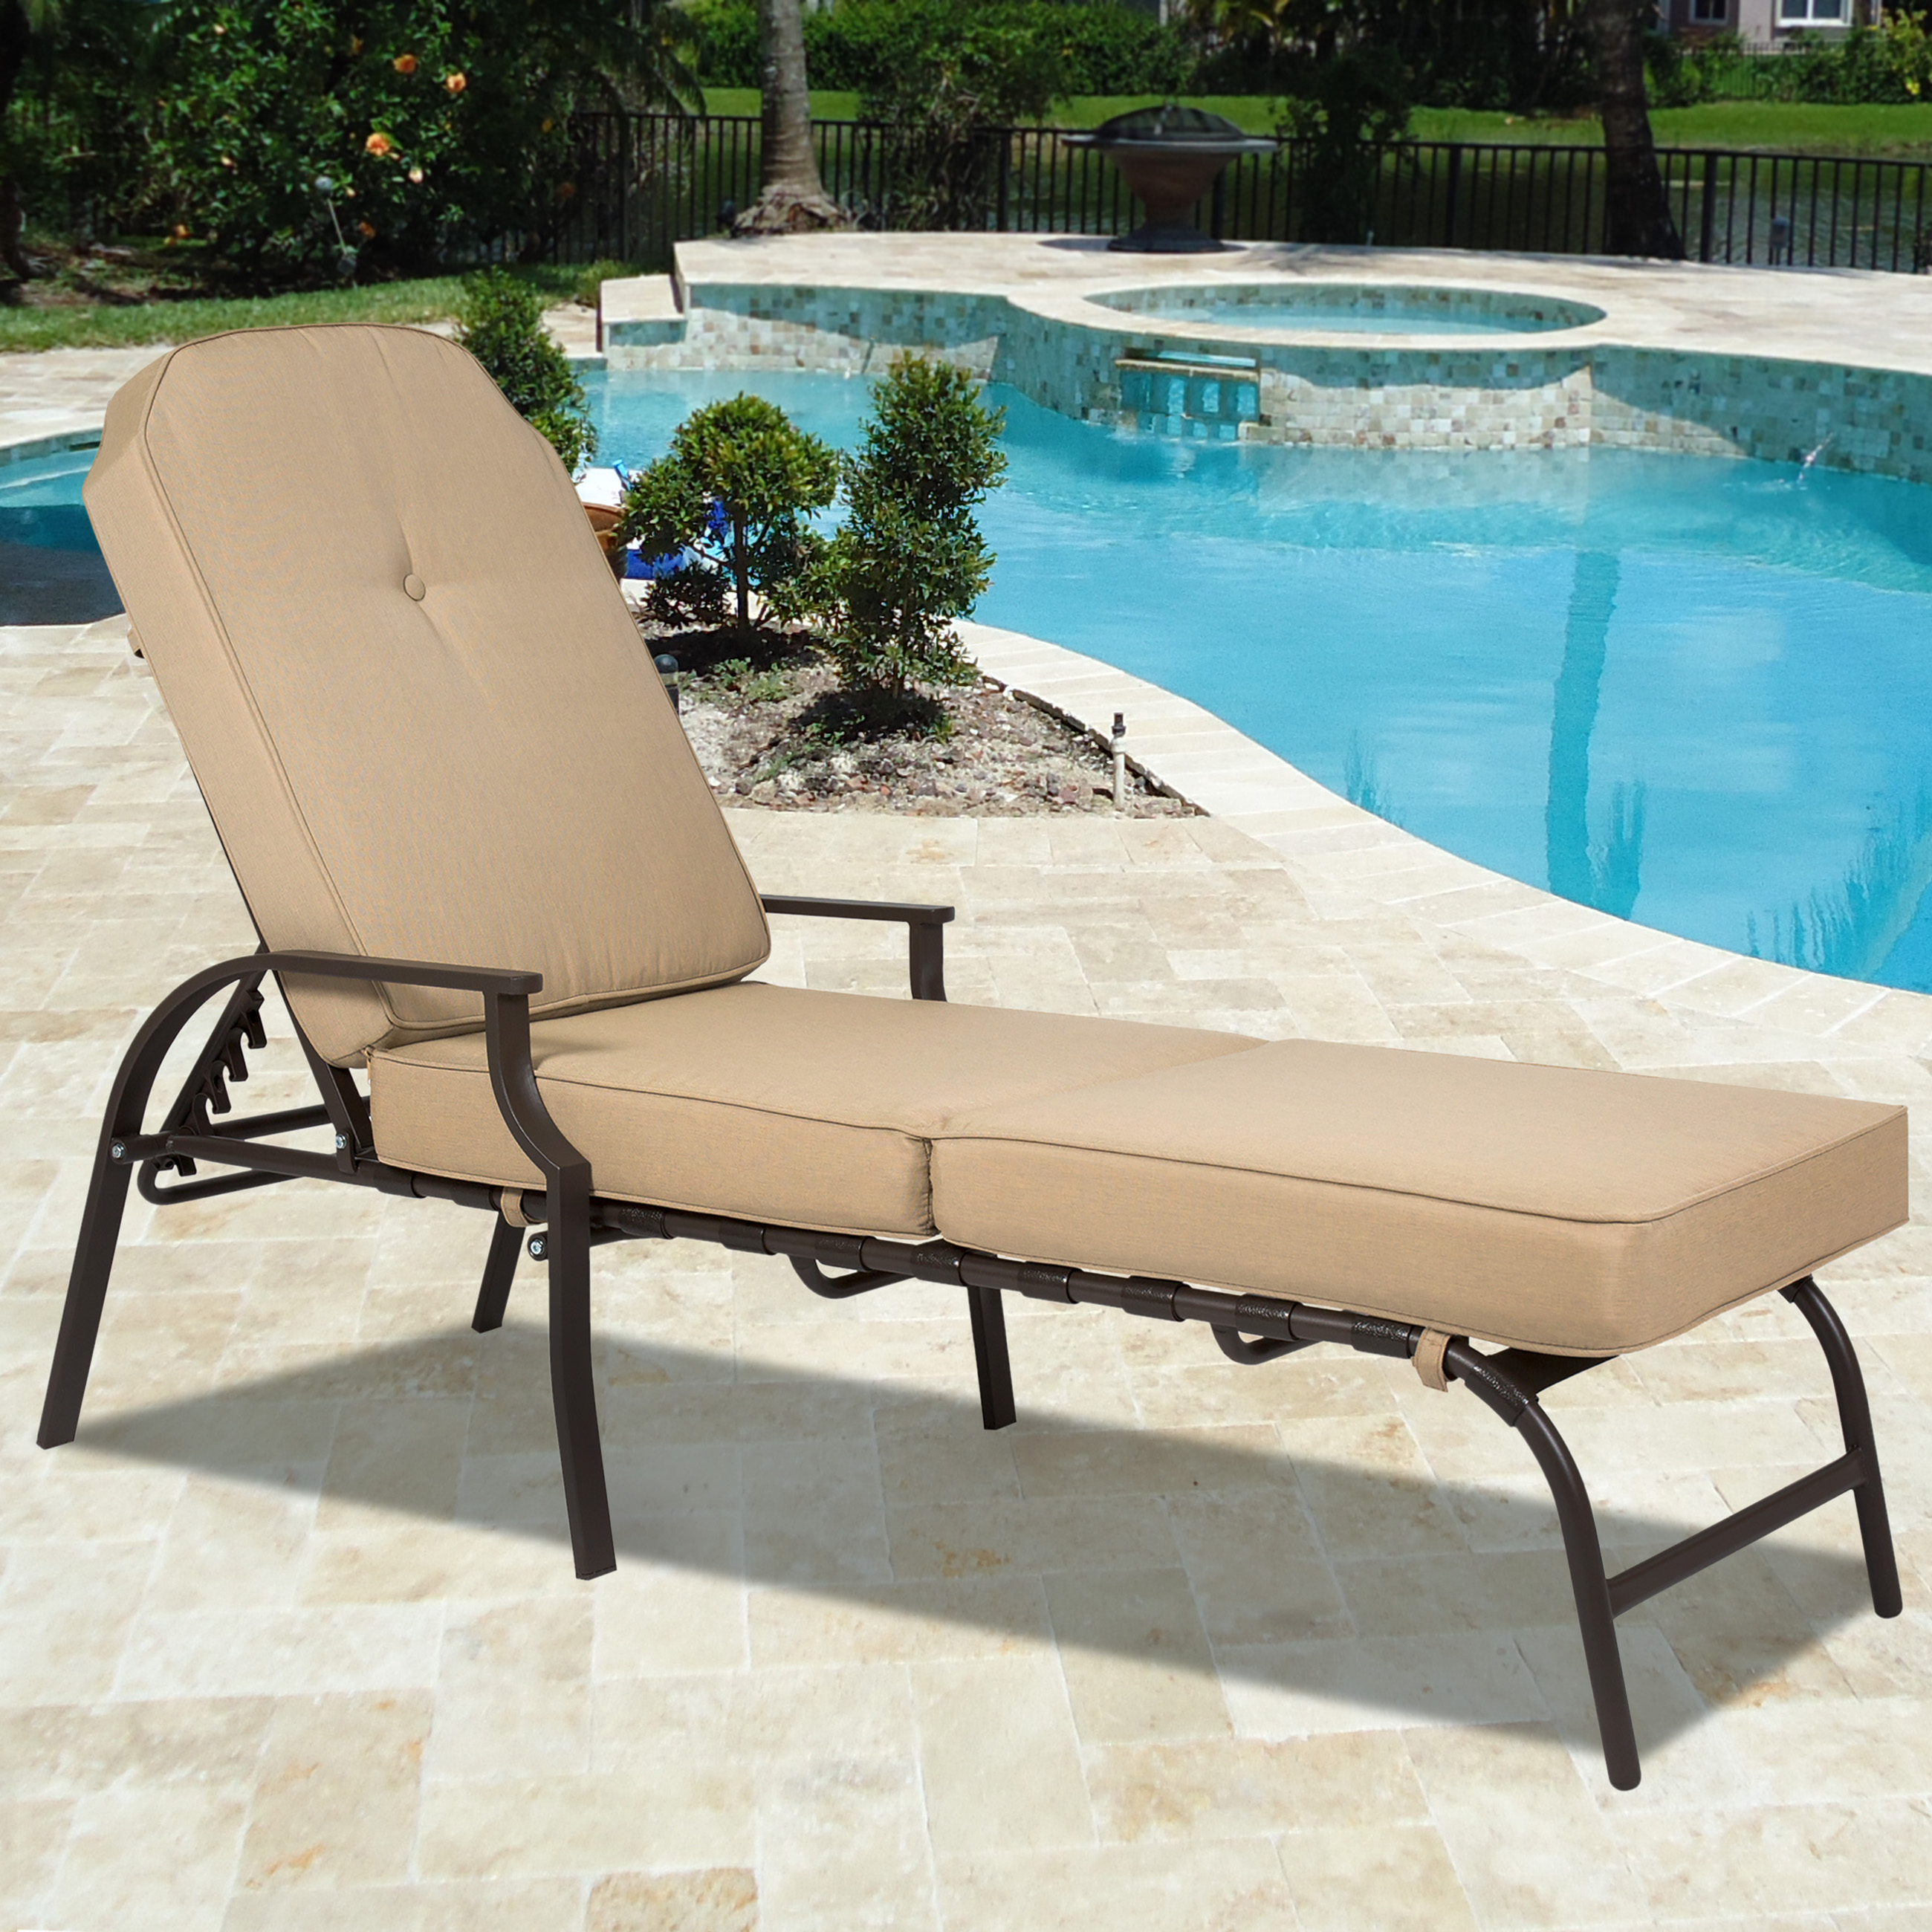 Patio chaise lounge chaise lounge patio furniture for Chaise de patio